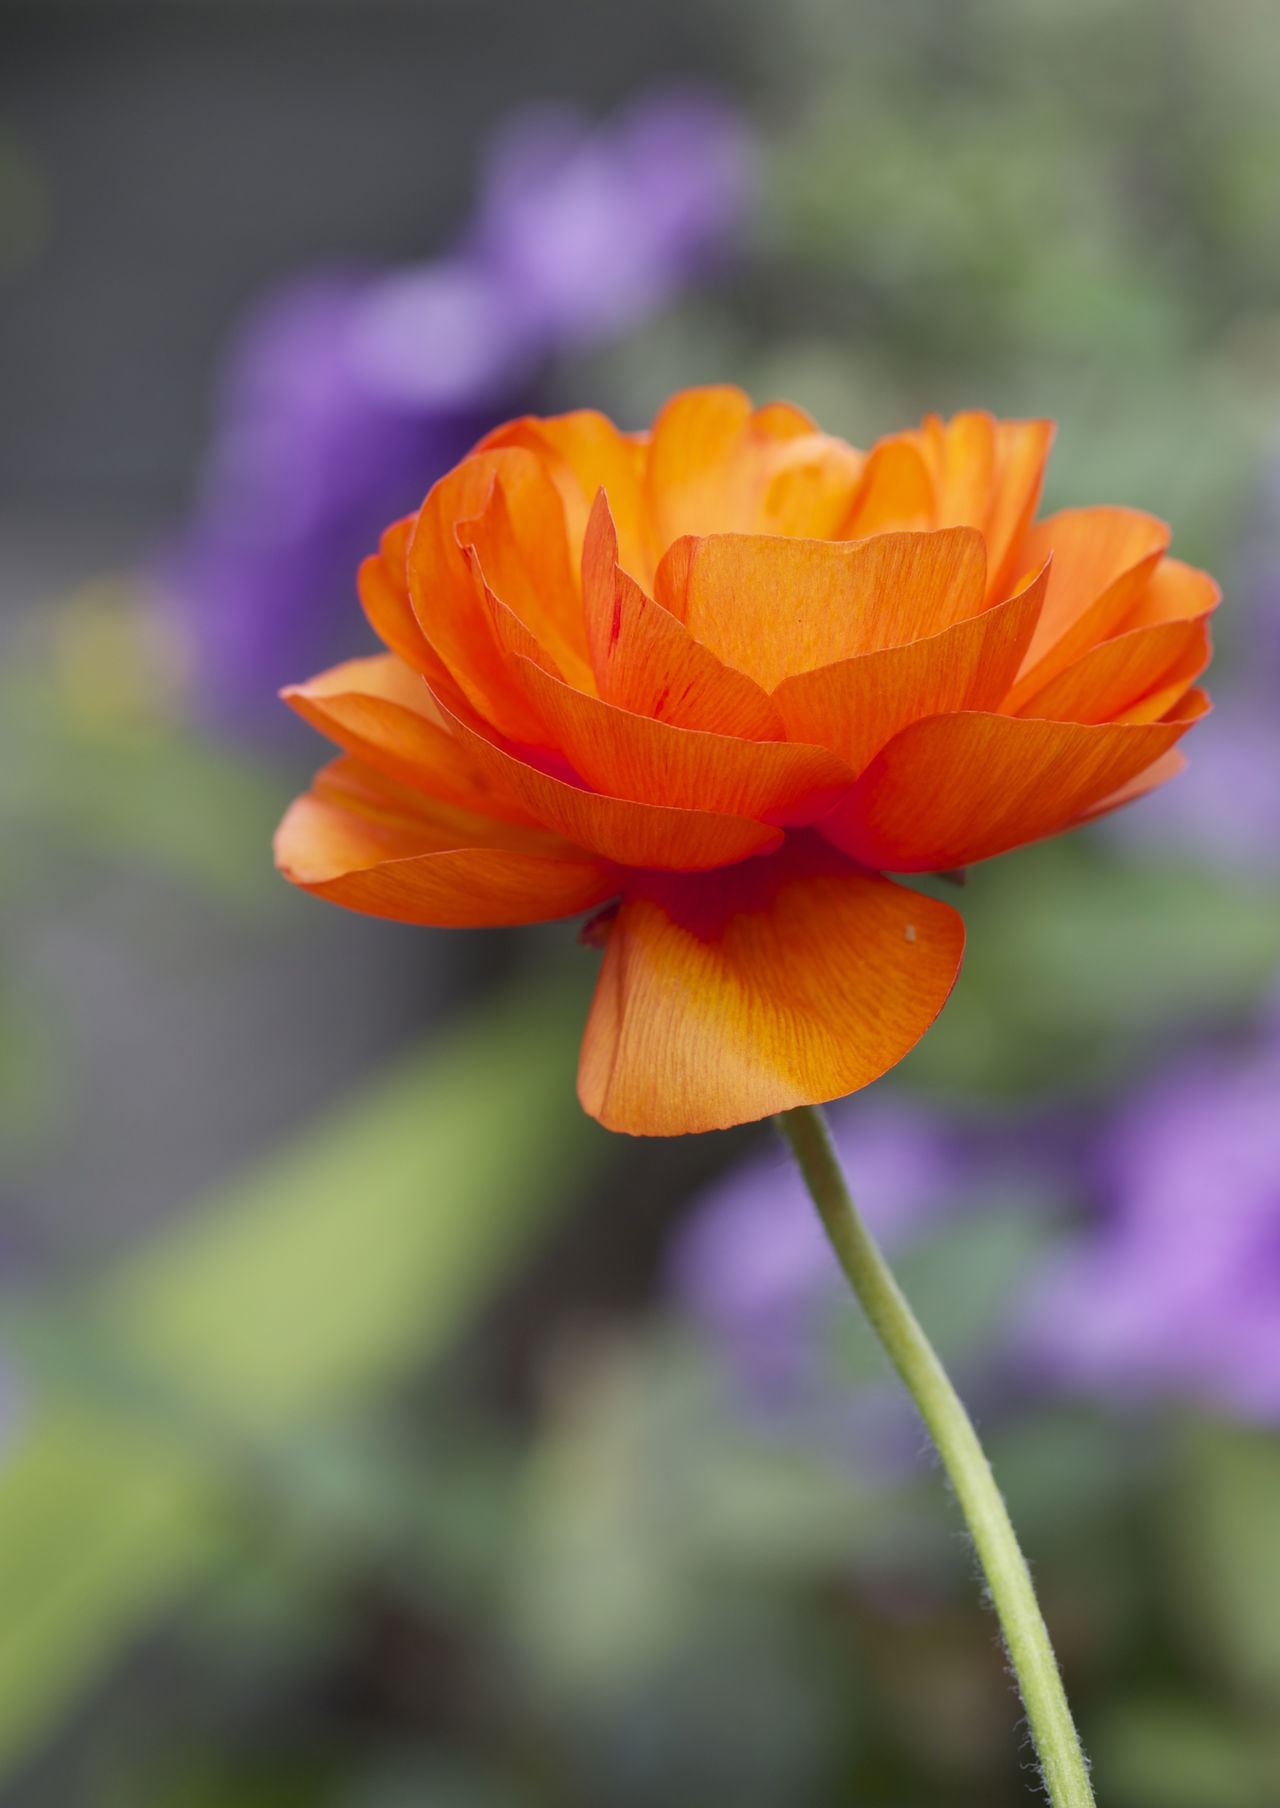 Isolated Single Stemmed Vibrant Poppy Beauty In Nature Close-up Flower Flower Head Fragility Freshness Growth Nature Outdoors Petal Plant Poppy Flowers Single Stem Summertime Vibrant Colours